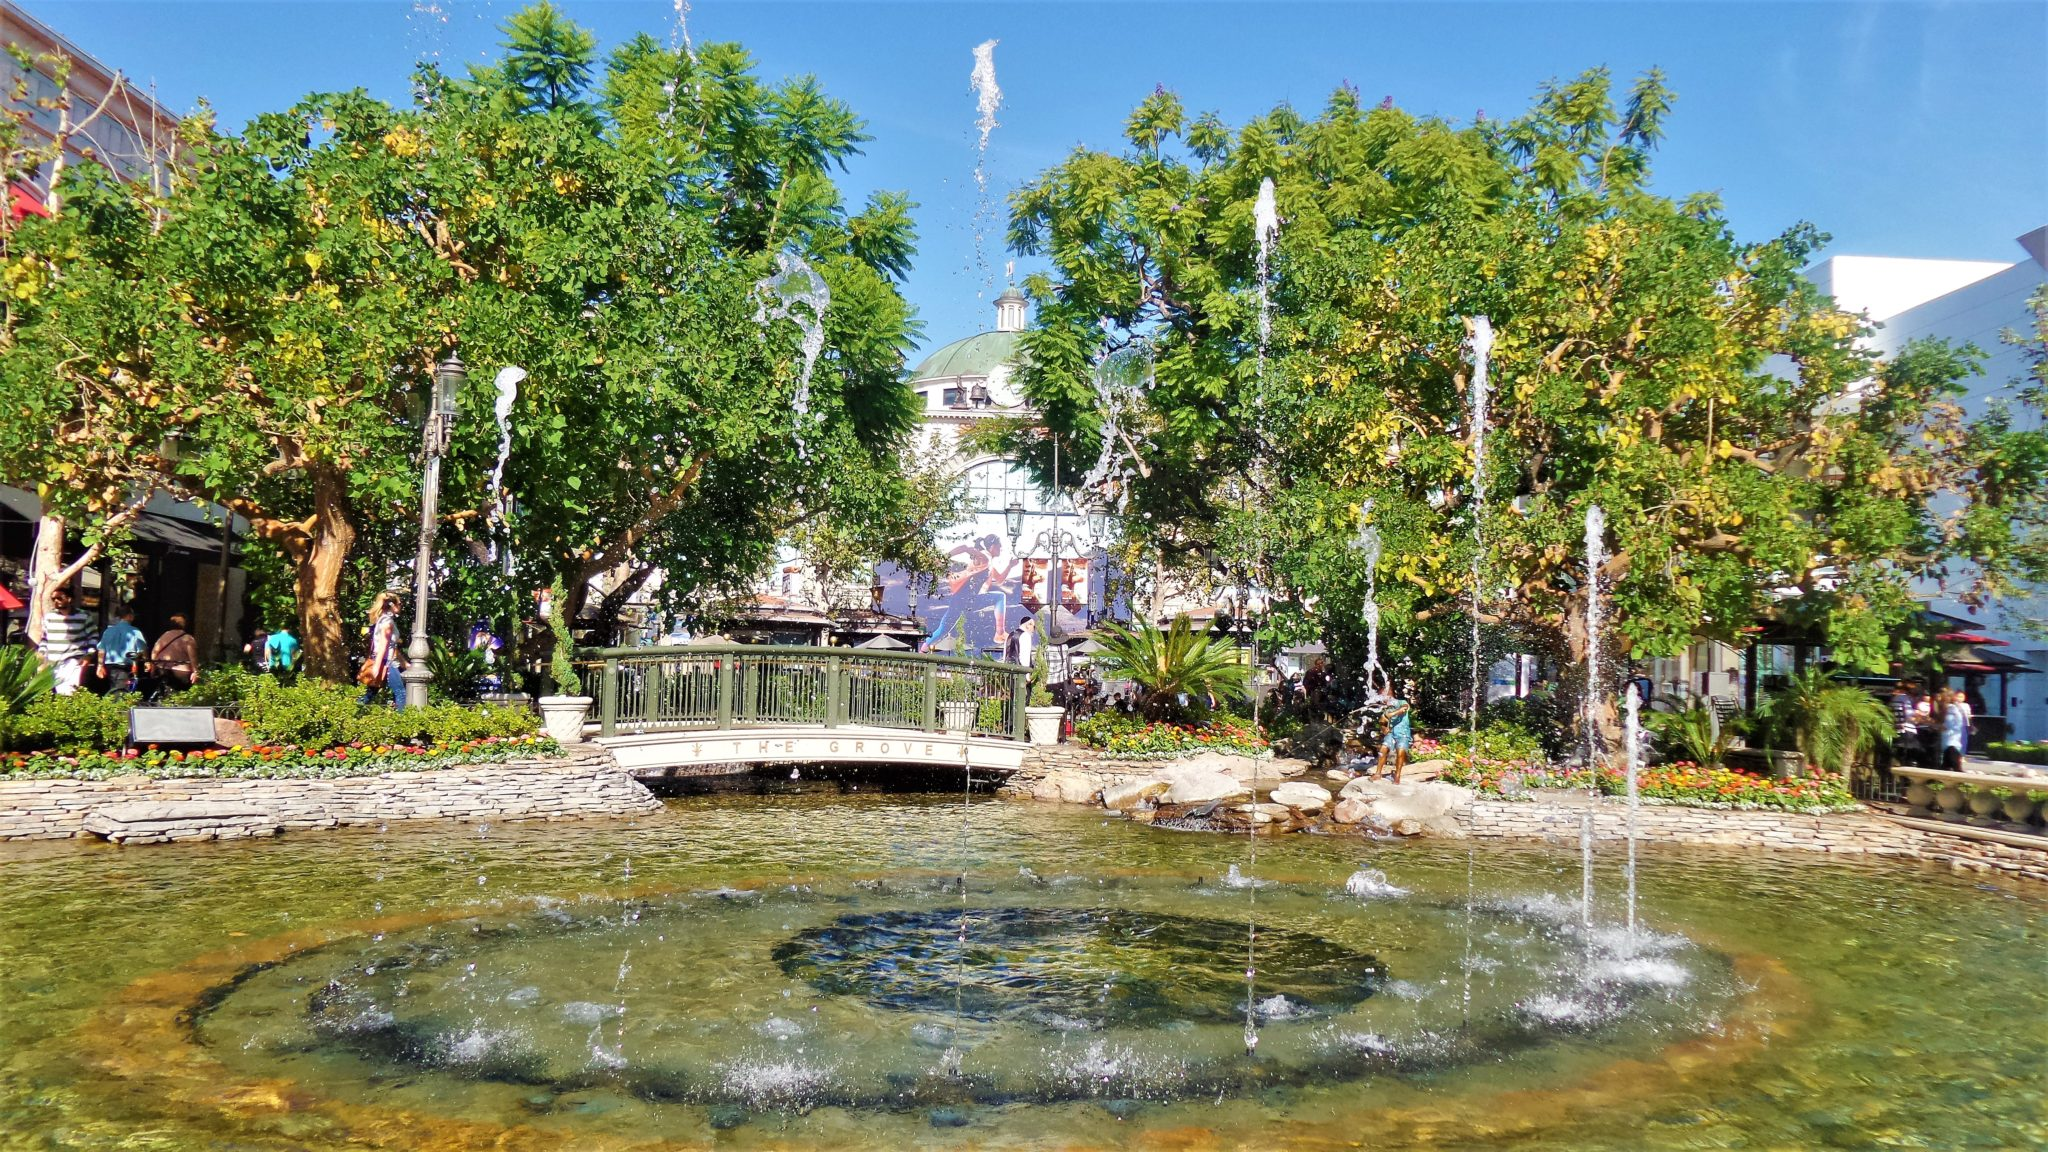 The Grove water fountains, things to do in los angeles